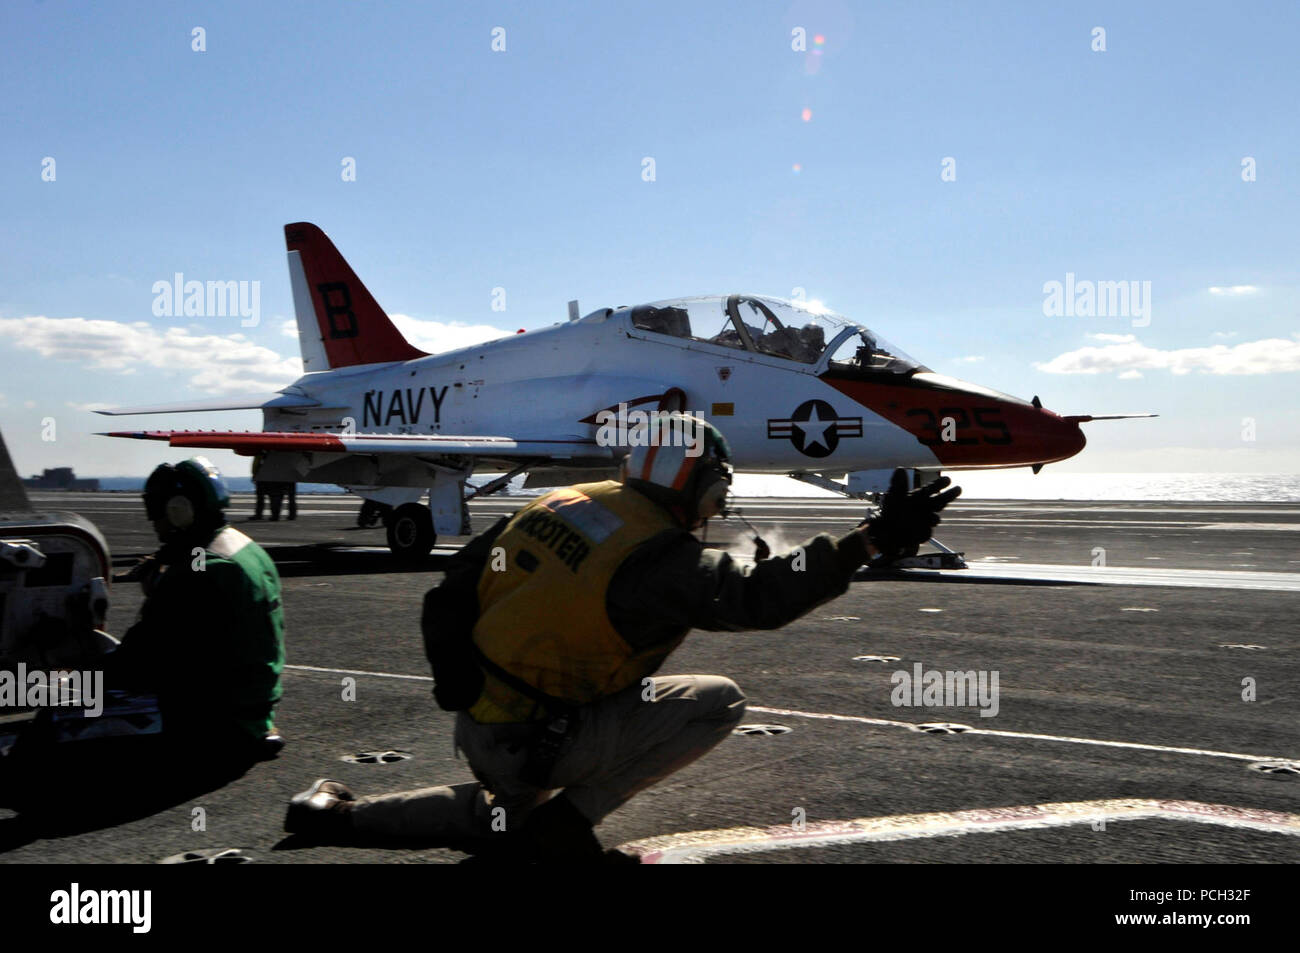 OCEAN (Nov. 5, 2011) A T-45C Goshawk training aircraft assigned to the Eagles of Training Squadron (VT) 7 launches from the aircraft carrier USS Ronald Reagan (CVN 76). Ronald Reagan is conducting operations supporting Naval Air Training Command carrier qualifications. - Stock Image